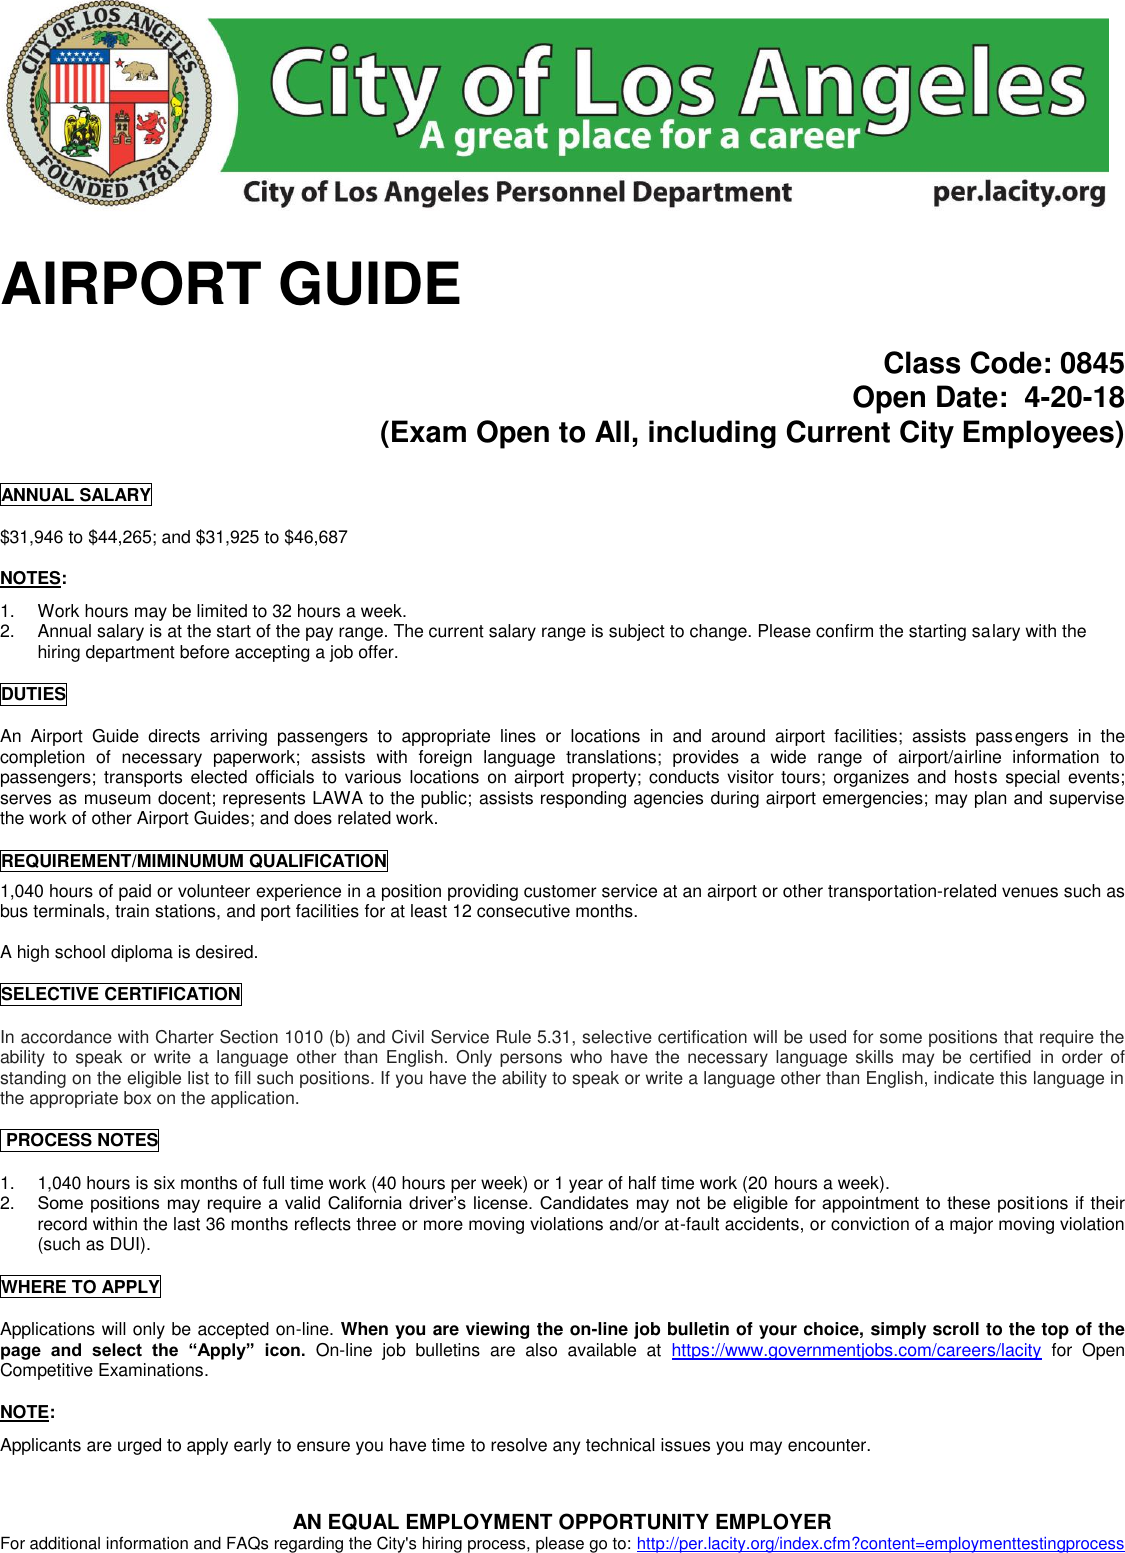 ELECTRIC DISTRIBUTION MECH TRAINEE AIRPORT GUIDE 0845 042018